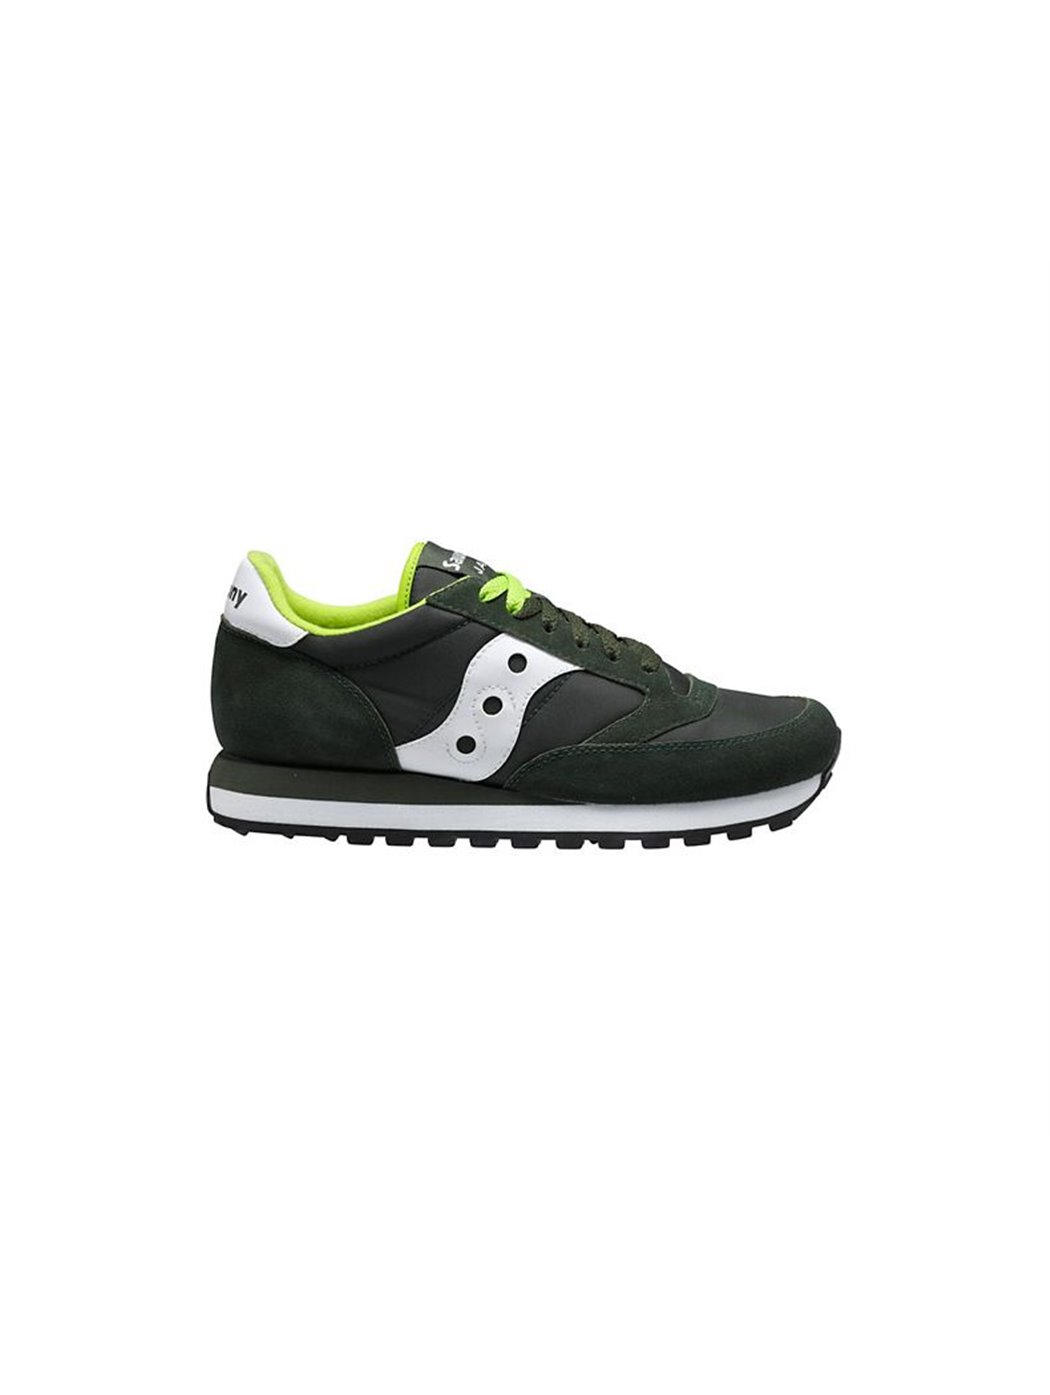 SAUCONY 2044-275 GREEN SNEAKERS